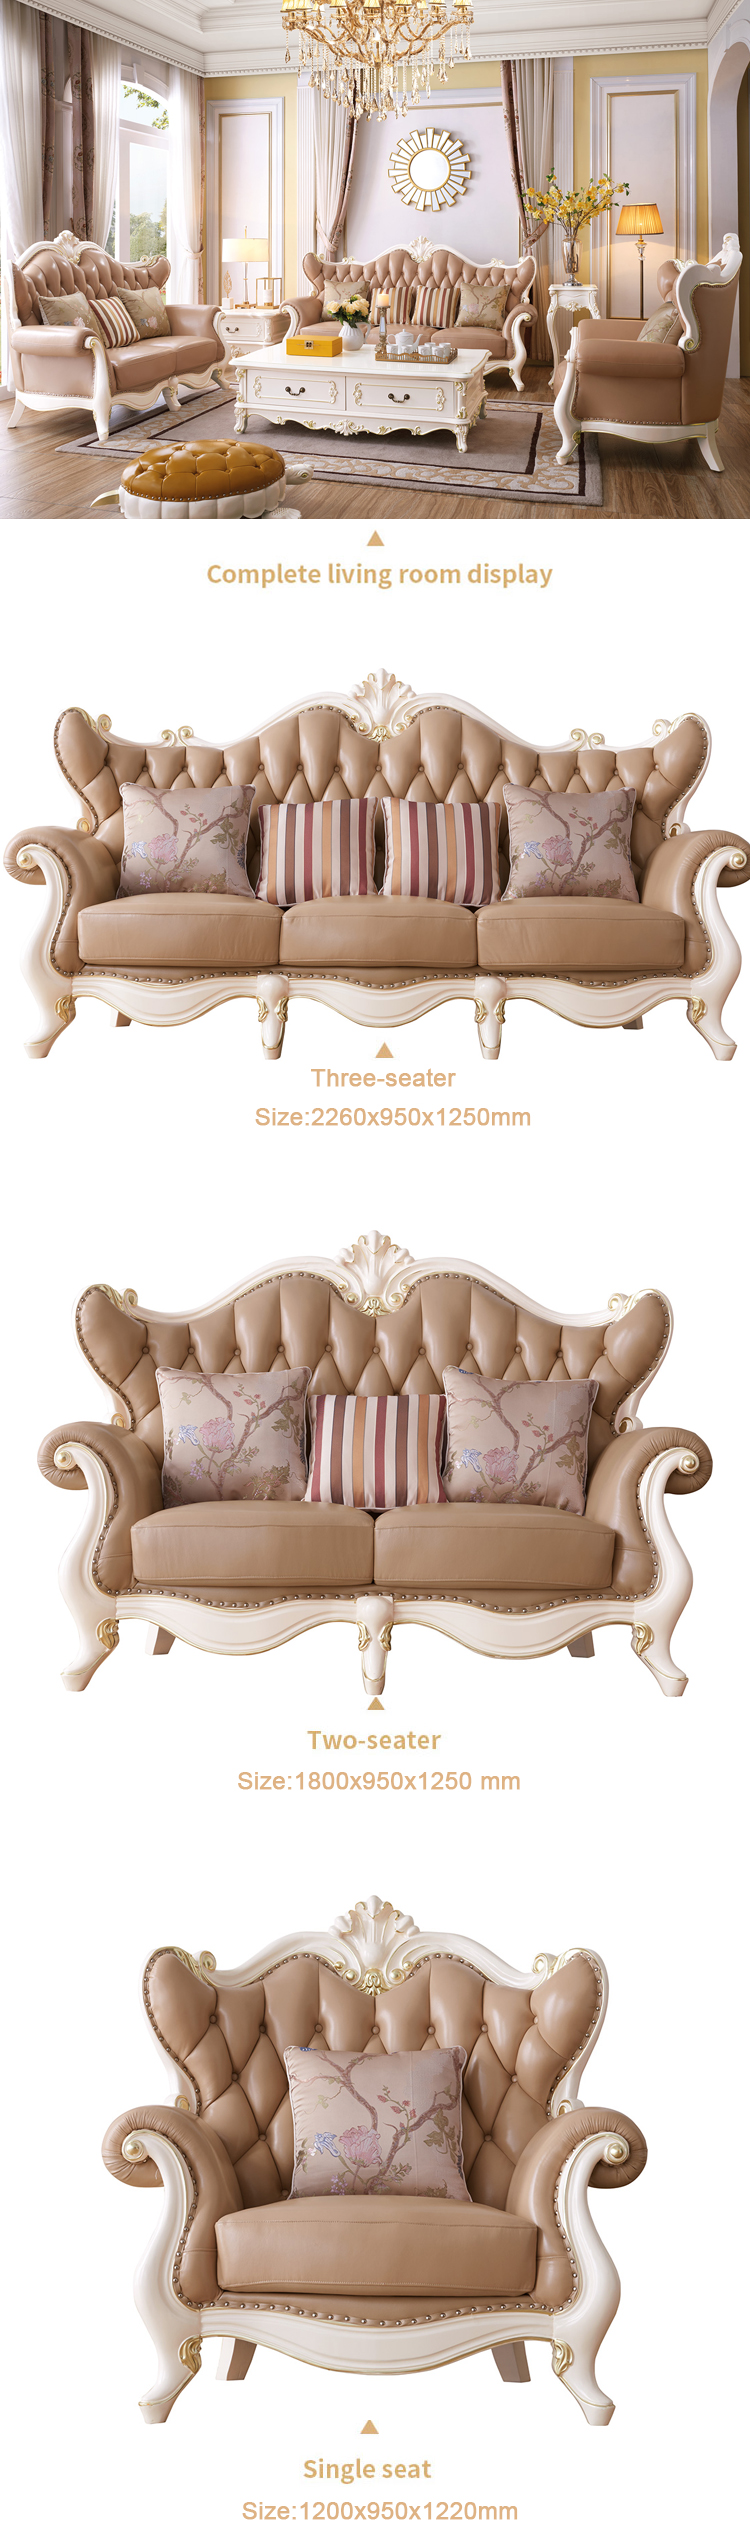 Turkey Cheap 3 Seater Retro Antique Sofa 1 Set Home Furniture Design For Drawing Room Buy Turkey Antique Sofa Cheap Sofa Set Home Furniture 3 Seater Retro Sofa Product On Alibaba Com